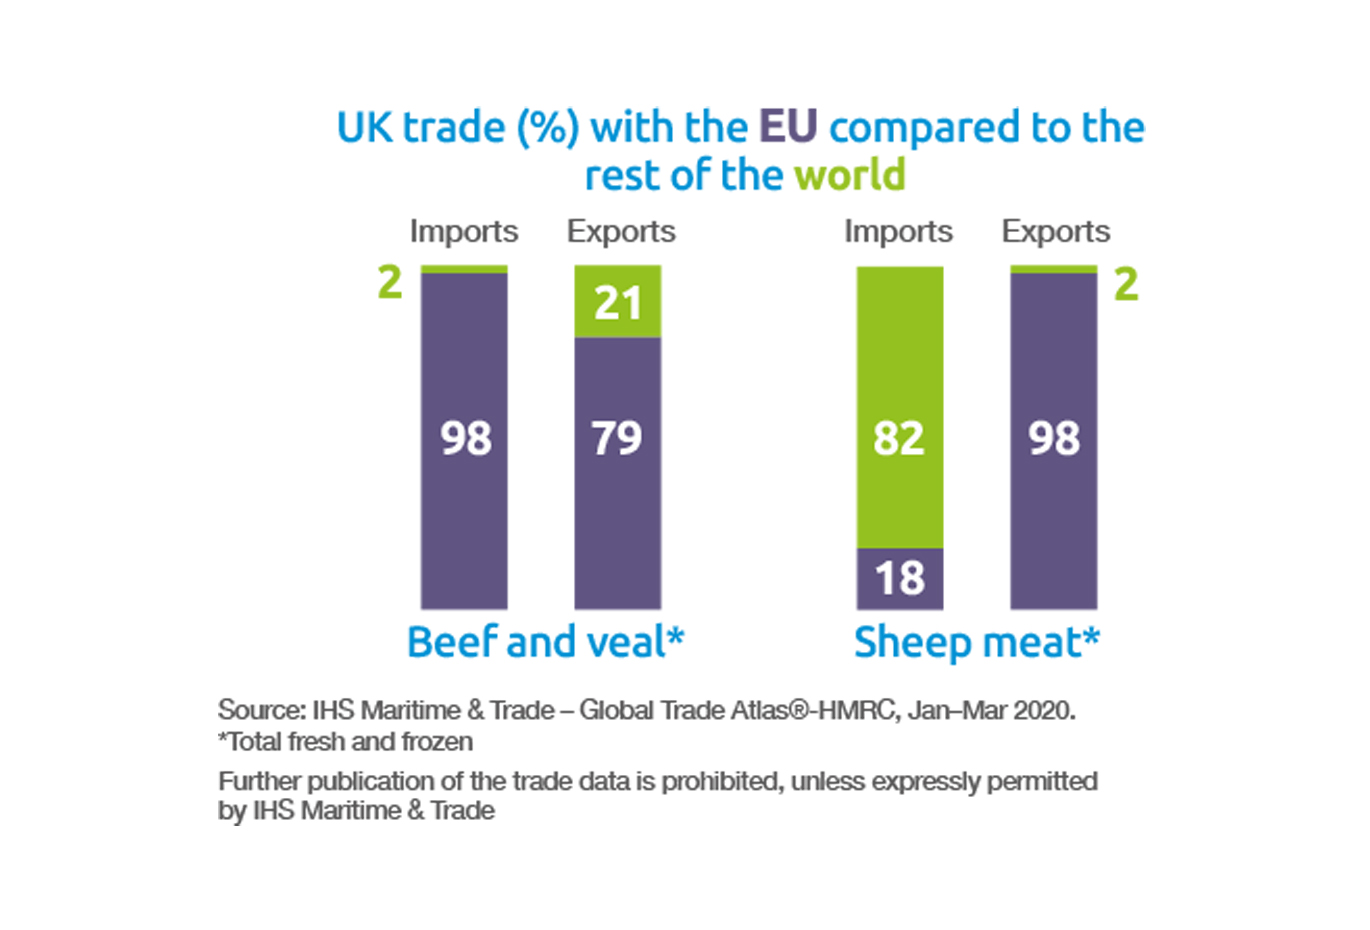 UK trade (%) with the EU compared to the rest of the world